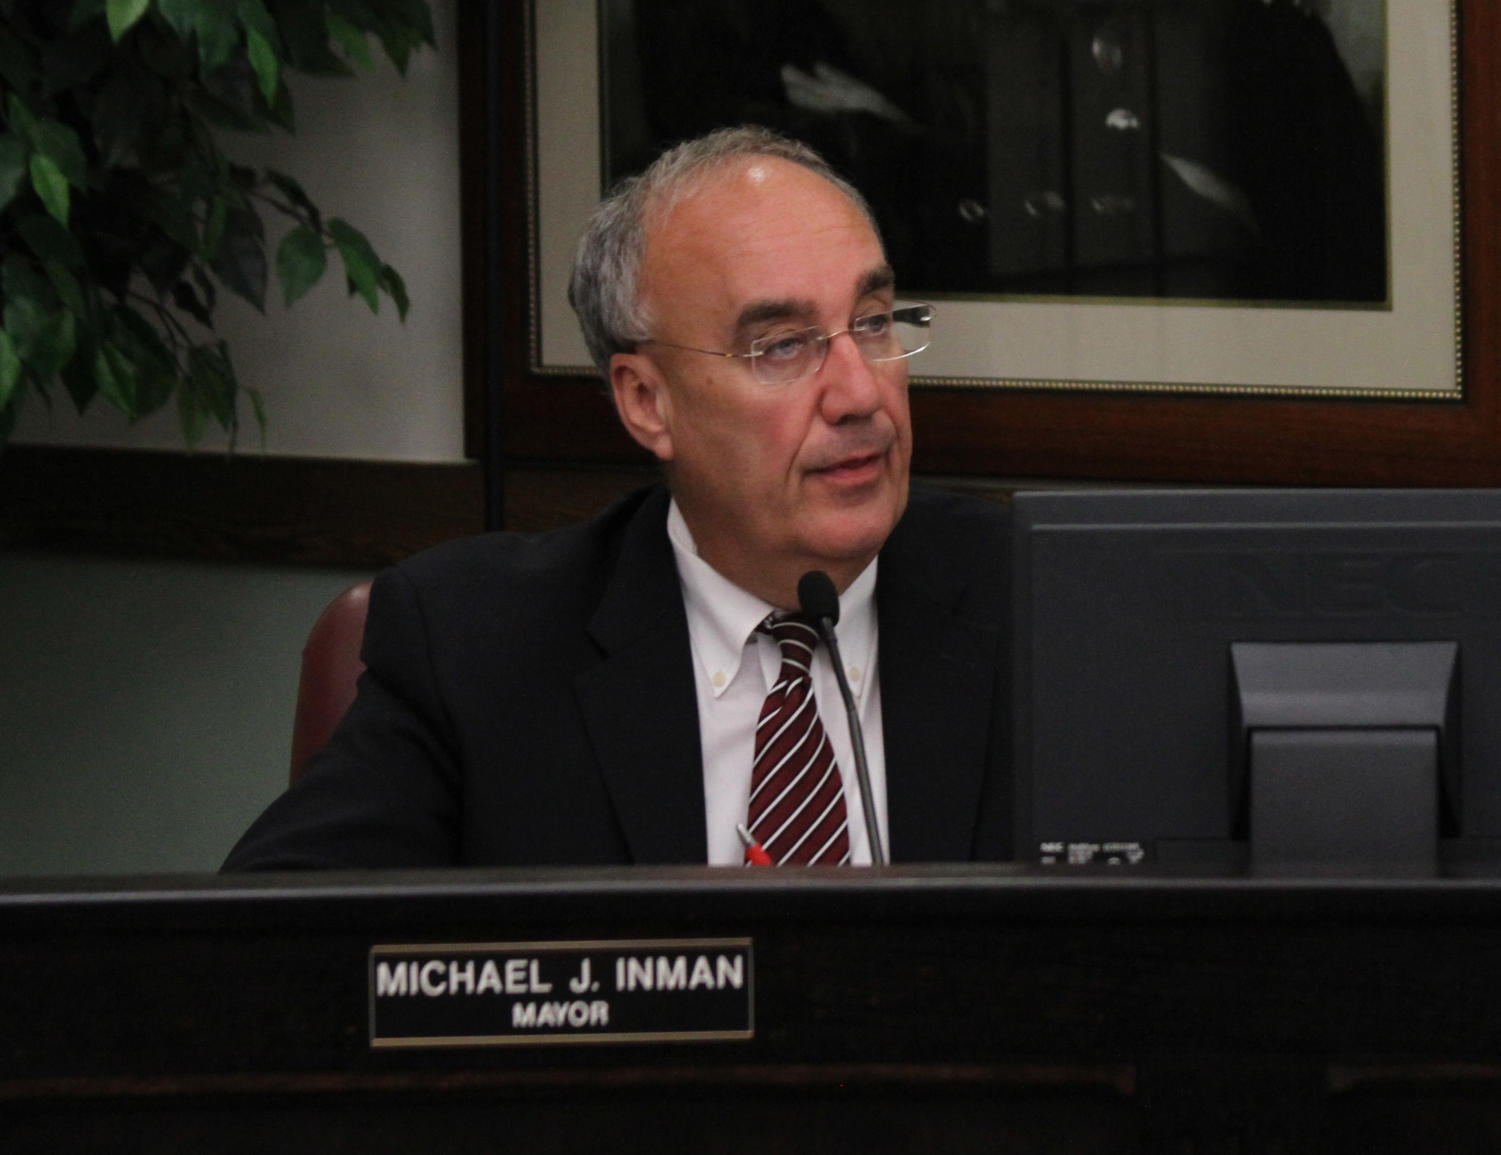 Mayor Mike Inman discusses issues facing Macomb.